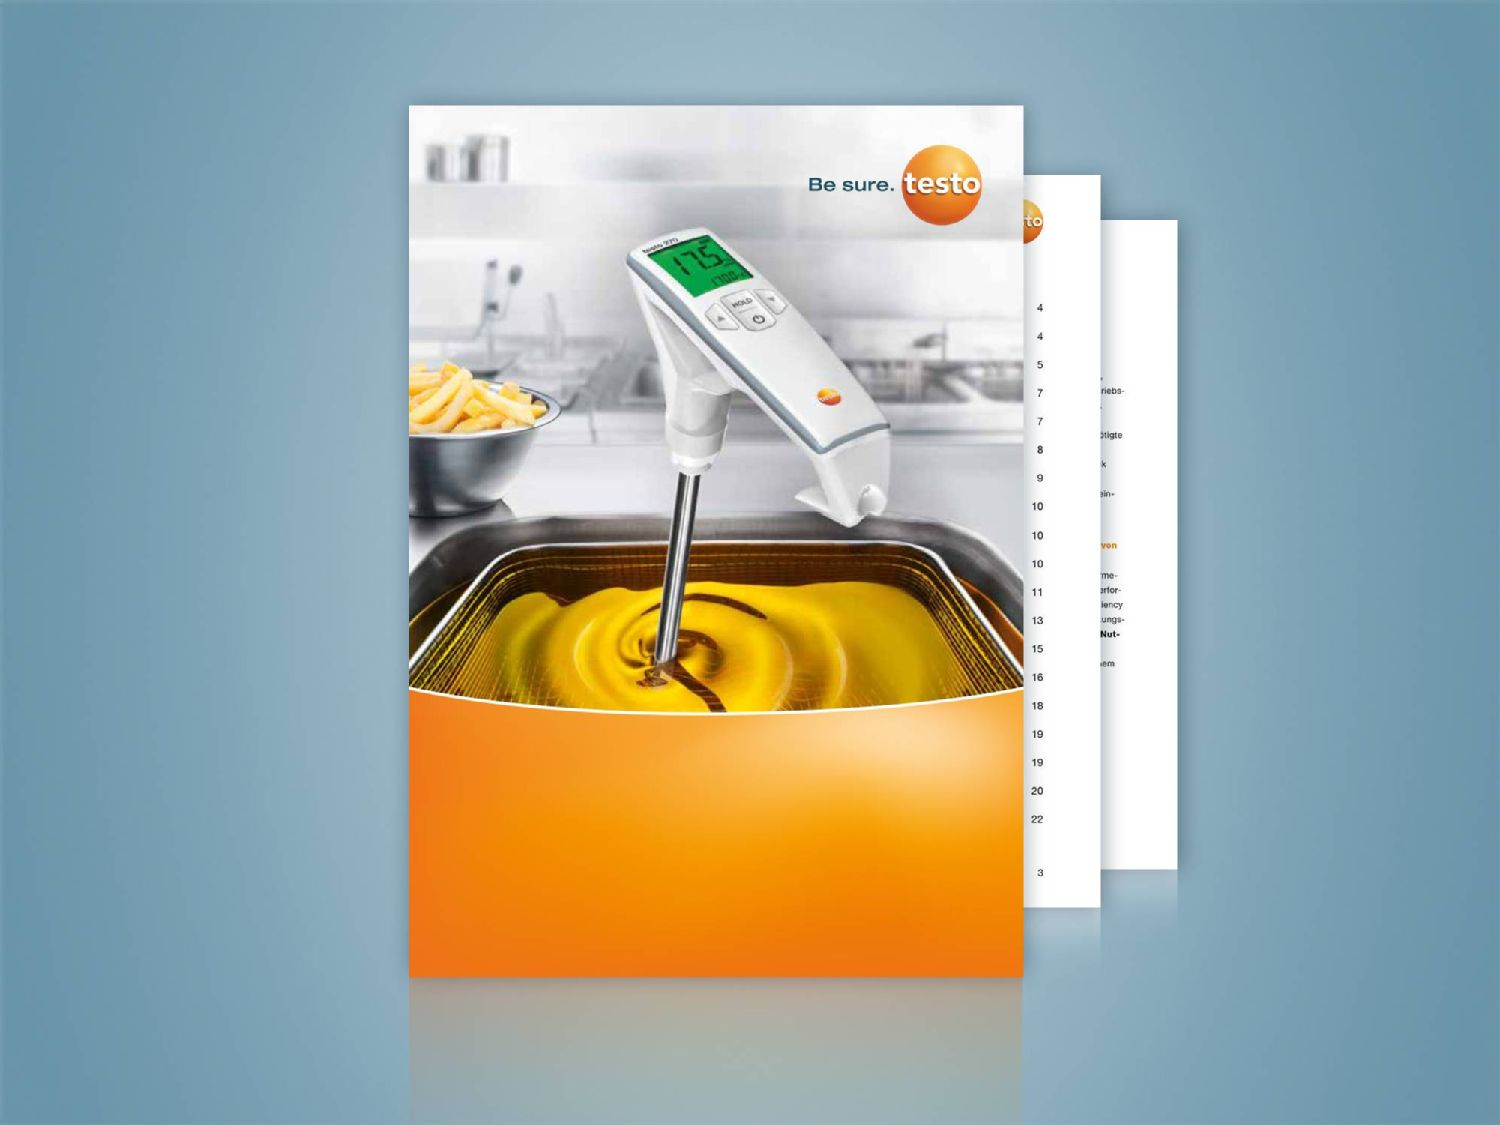 Practical guide cooking oil measurement.